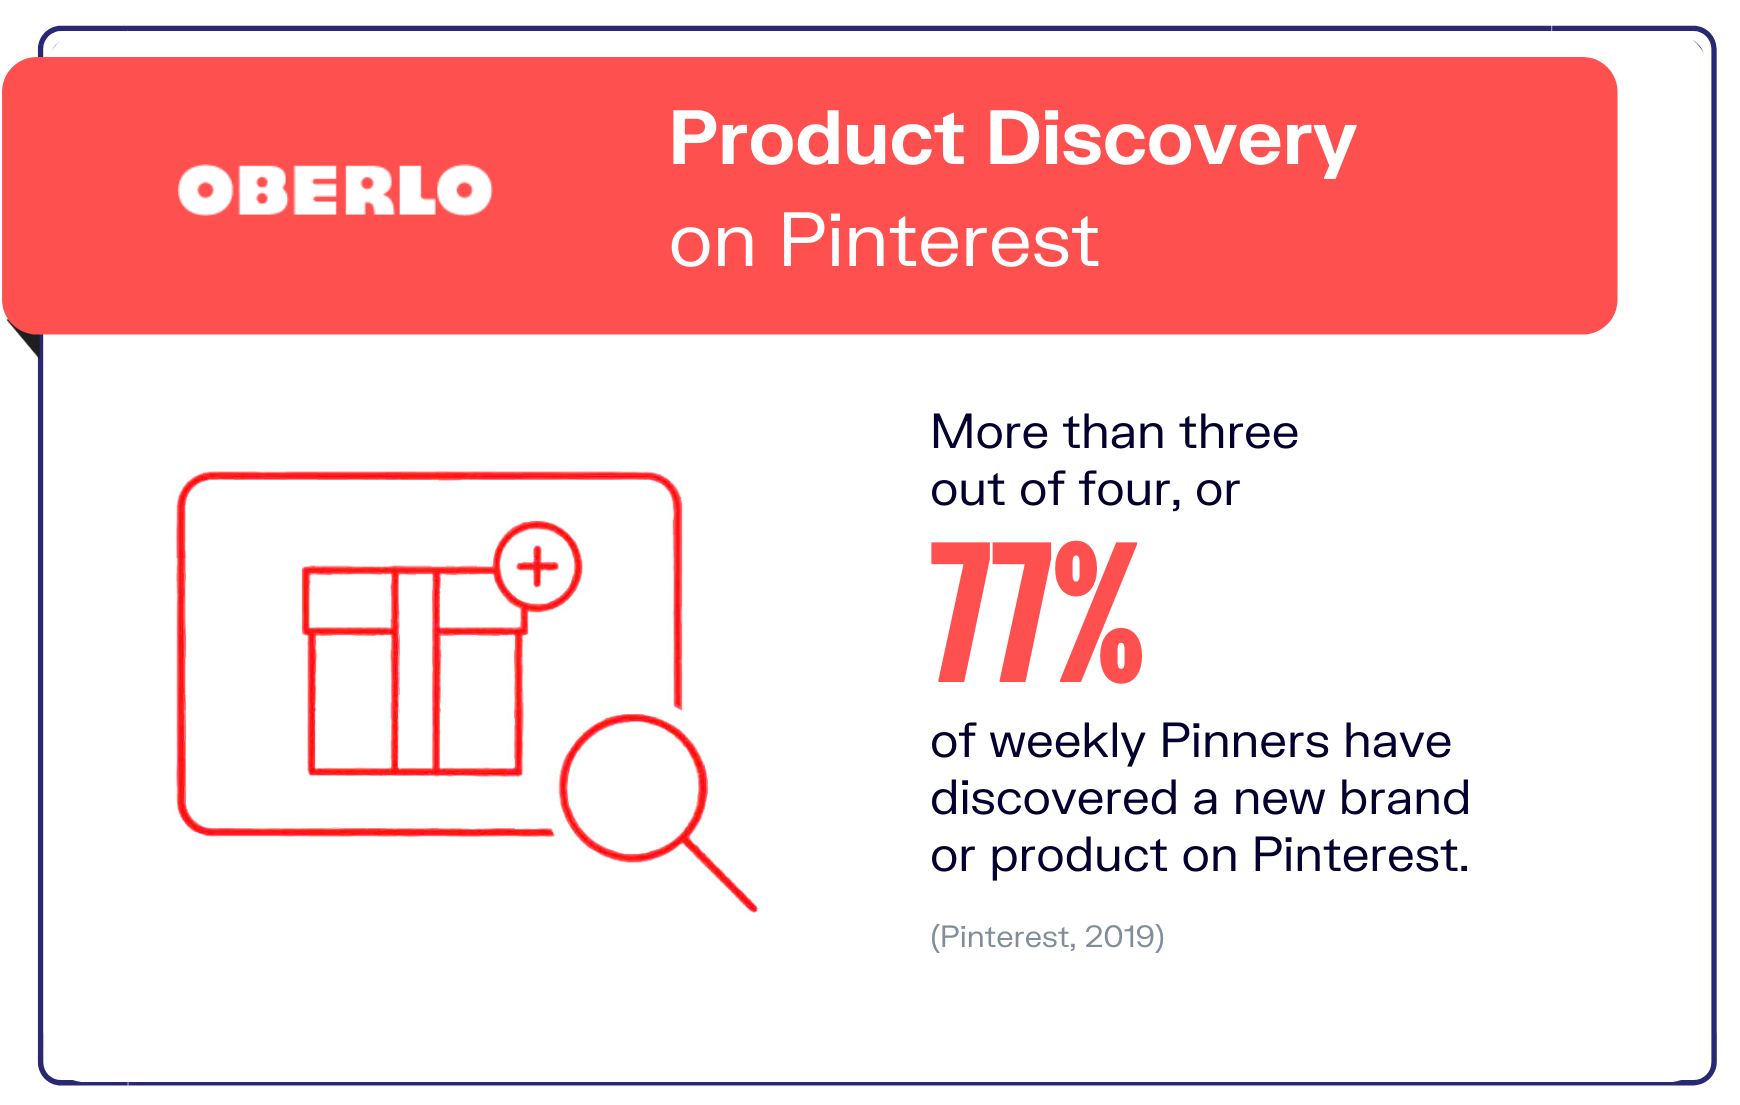 pinterest statistics stat 6 graphic